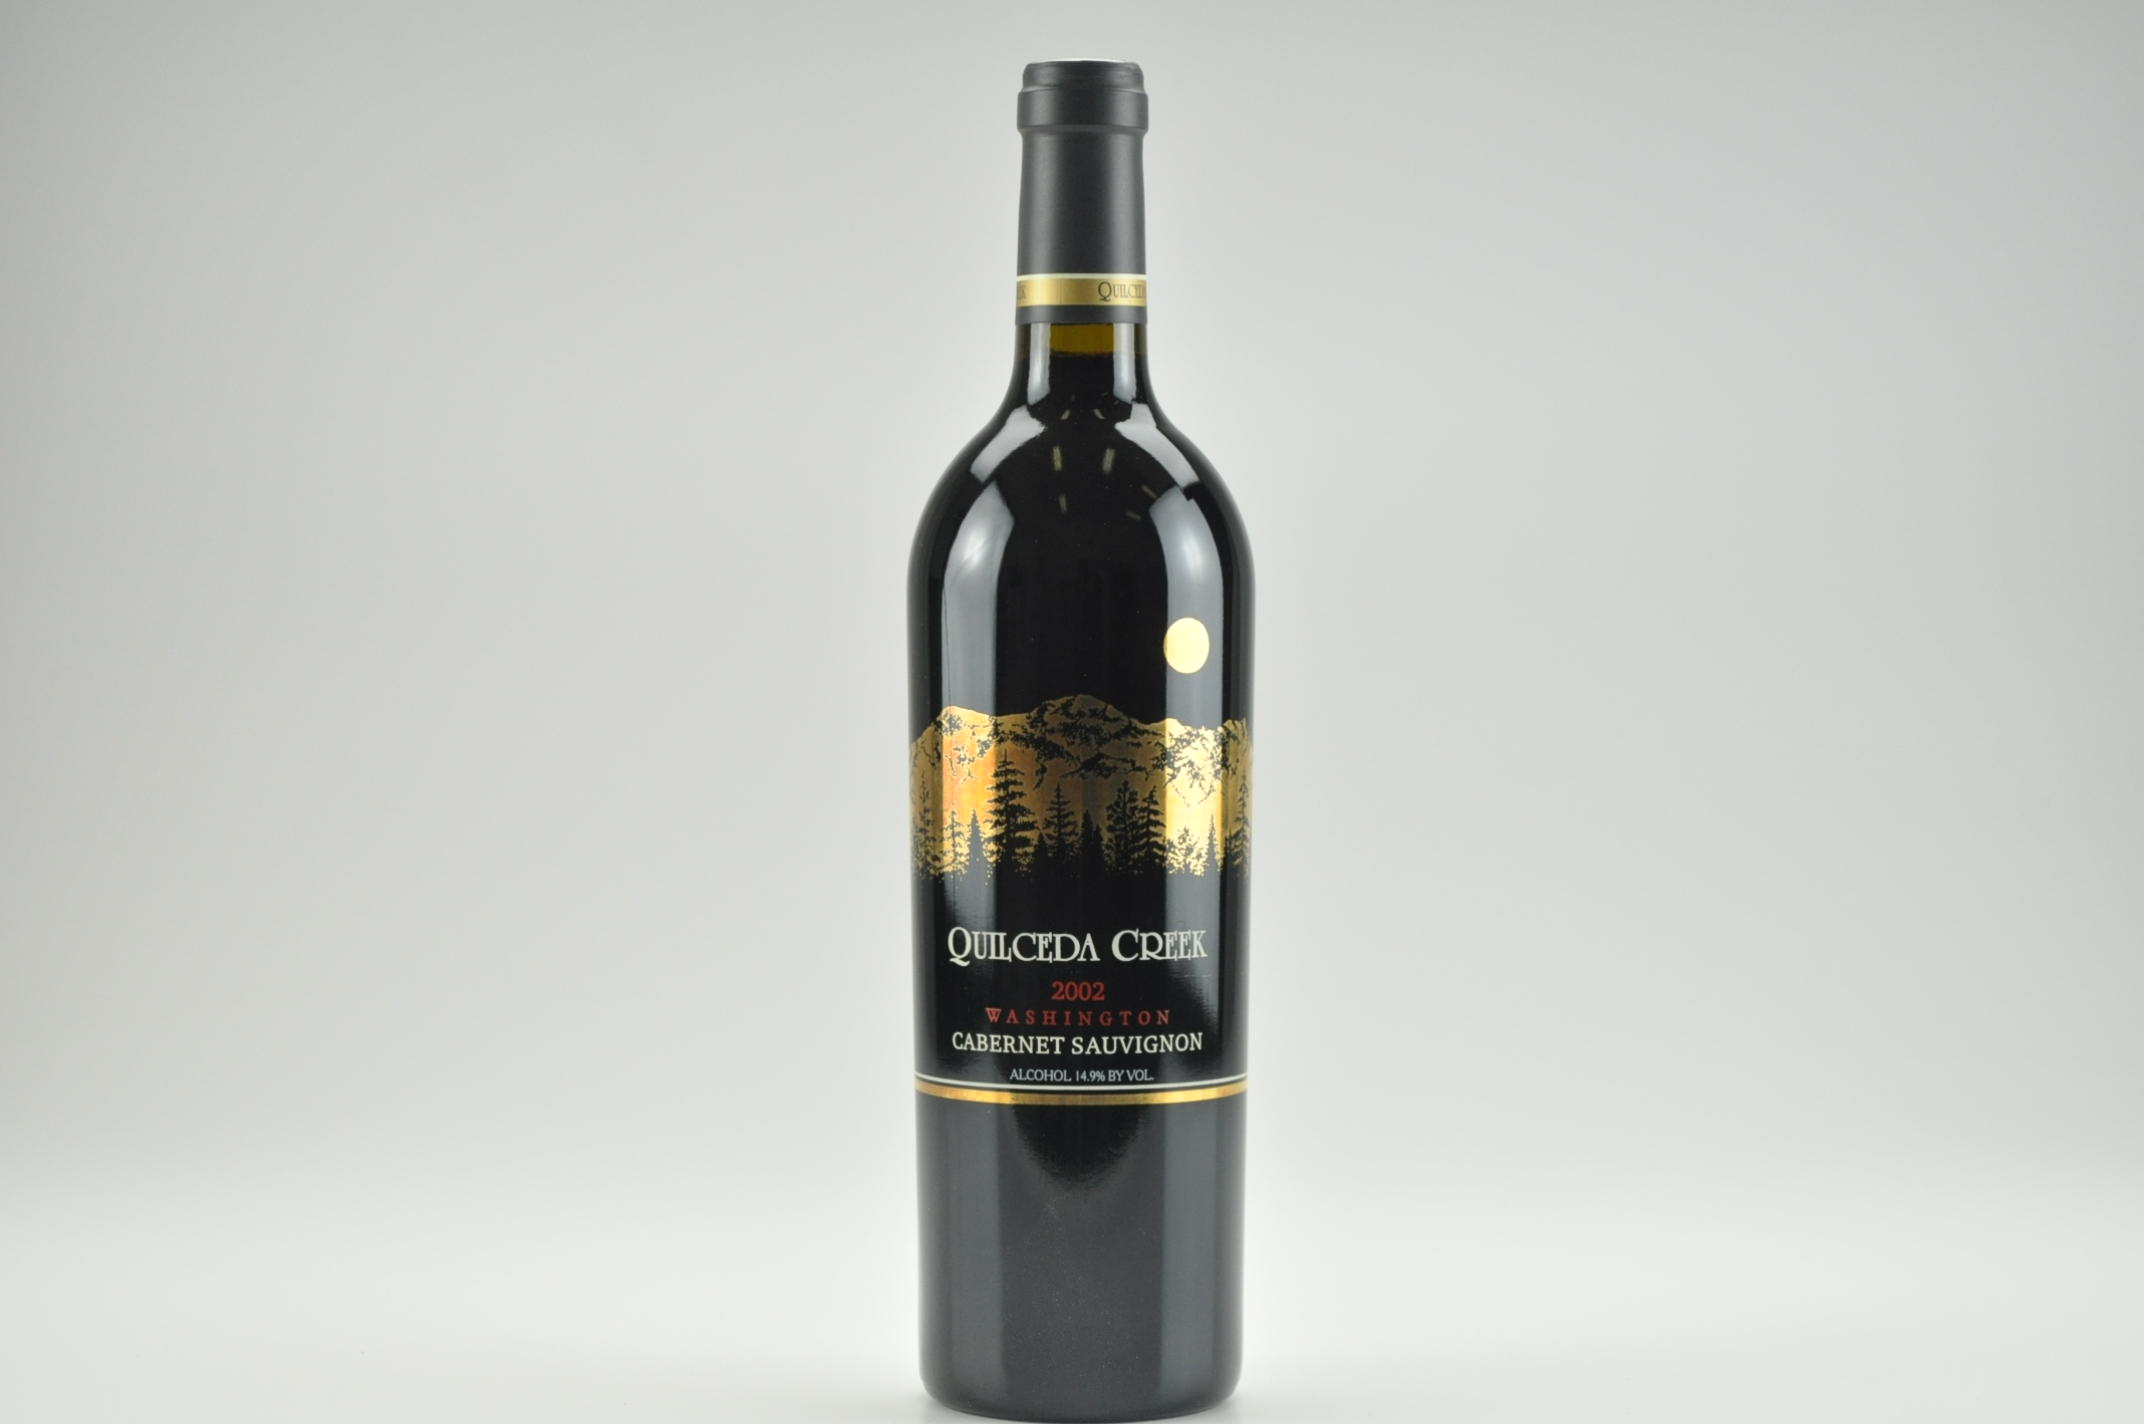 2009 Quilceda Creek Cabernet Sauvignon, Columbia Valley RP--99